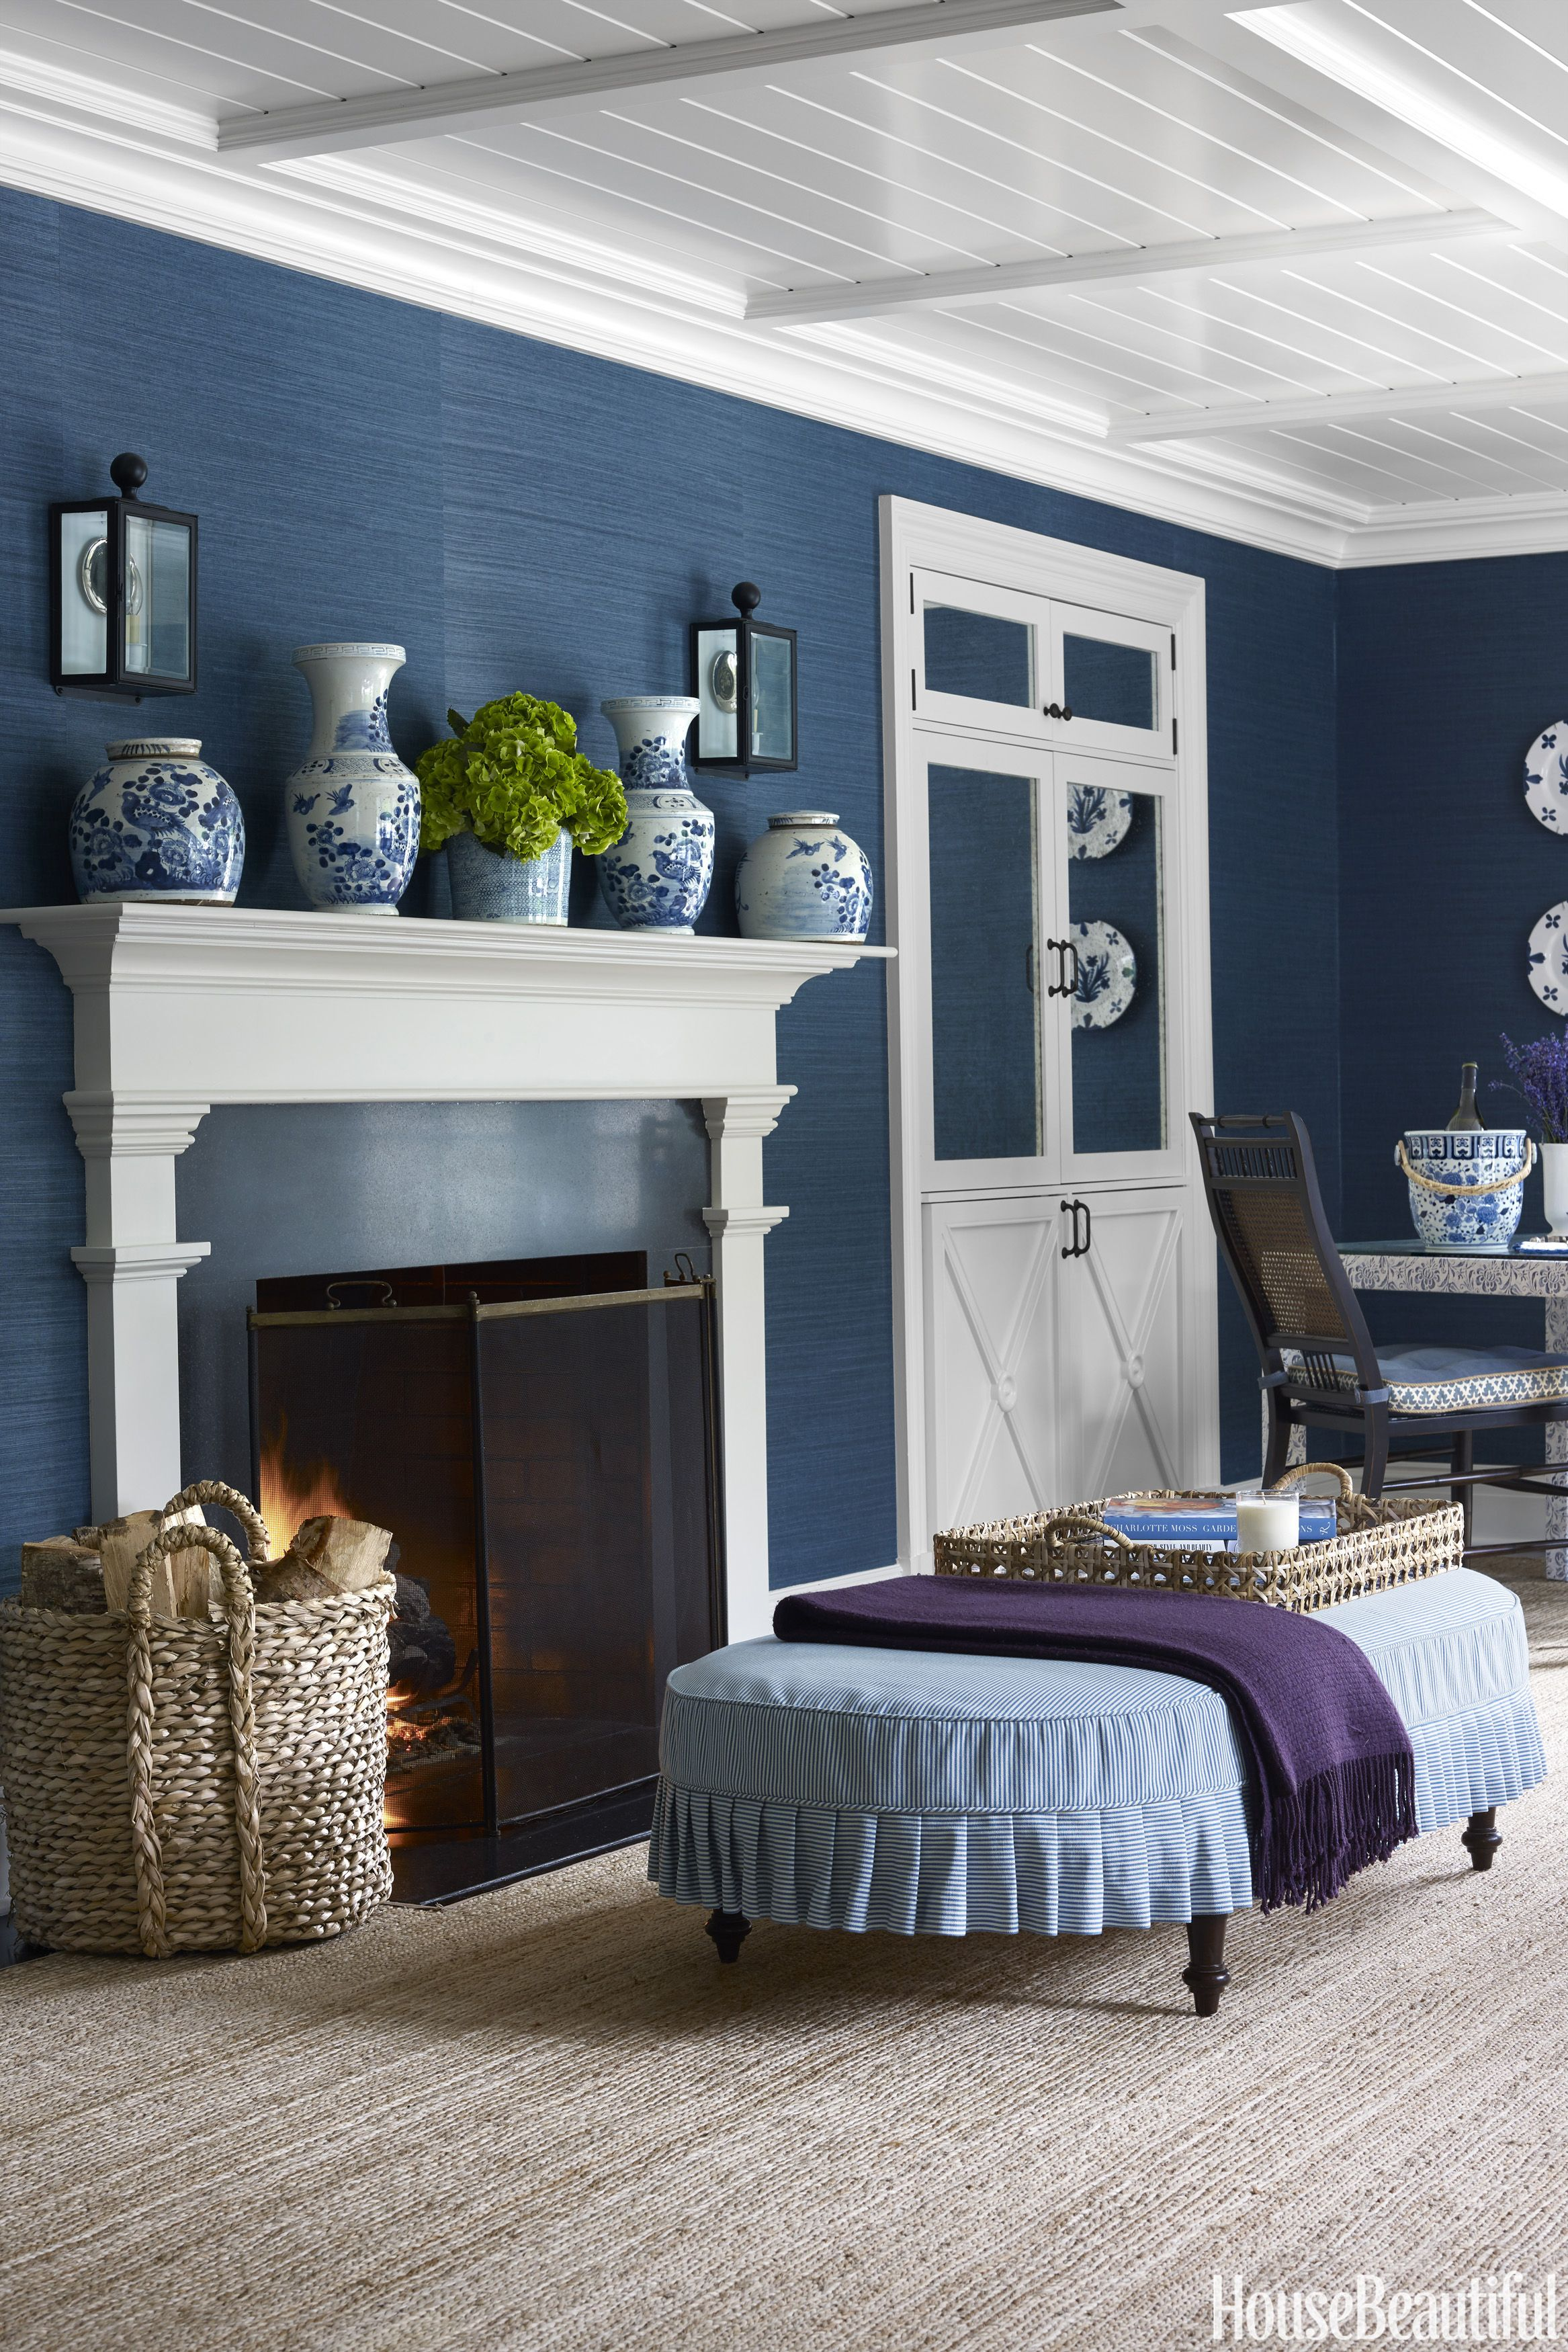 15 Cozy Fireplace Ideas - Best Fireplace Mantel Designs, Tips, and Colonial Blue Bedroom Decorating on colonial bedroom art, colonial rugs, colonial architecture, colonial bedroom furnishings, colonial bedroom style, colonial bathroom, colonial bedroom sets, colonial general, colonial beds, colonial mirrors, colonial master bedroom, colonial bedroom colors, colonial kitchen, colonial interior,